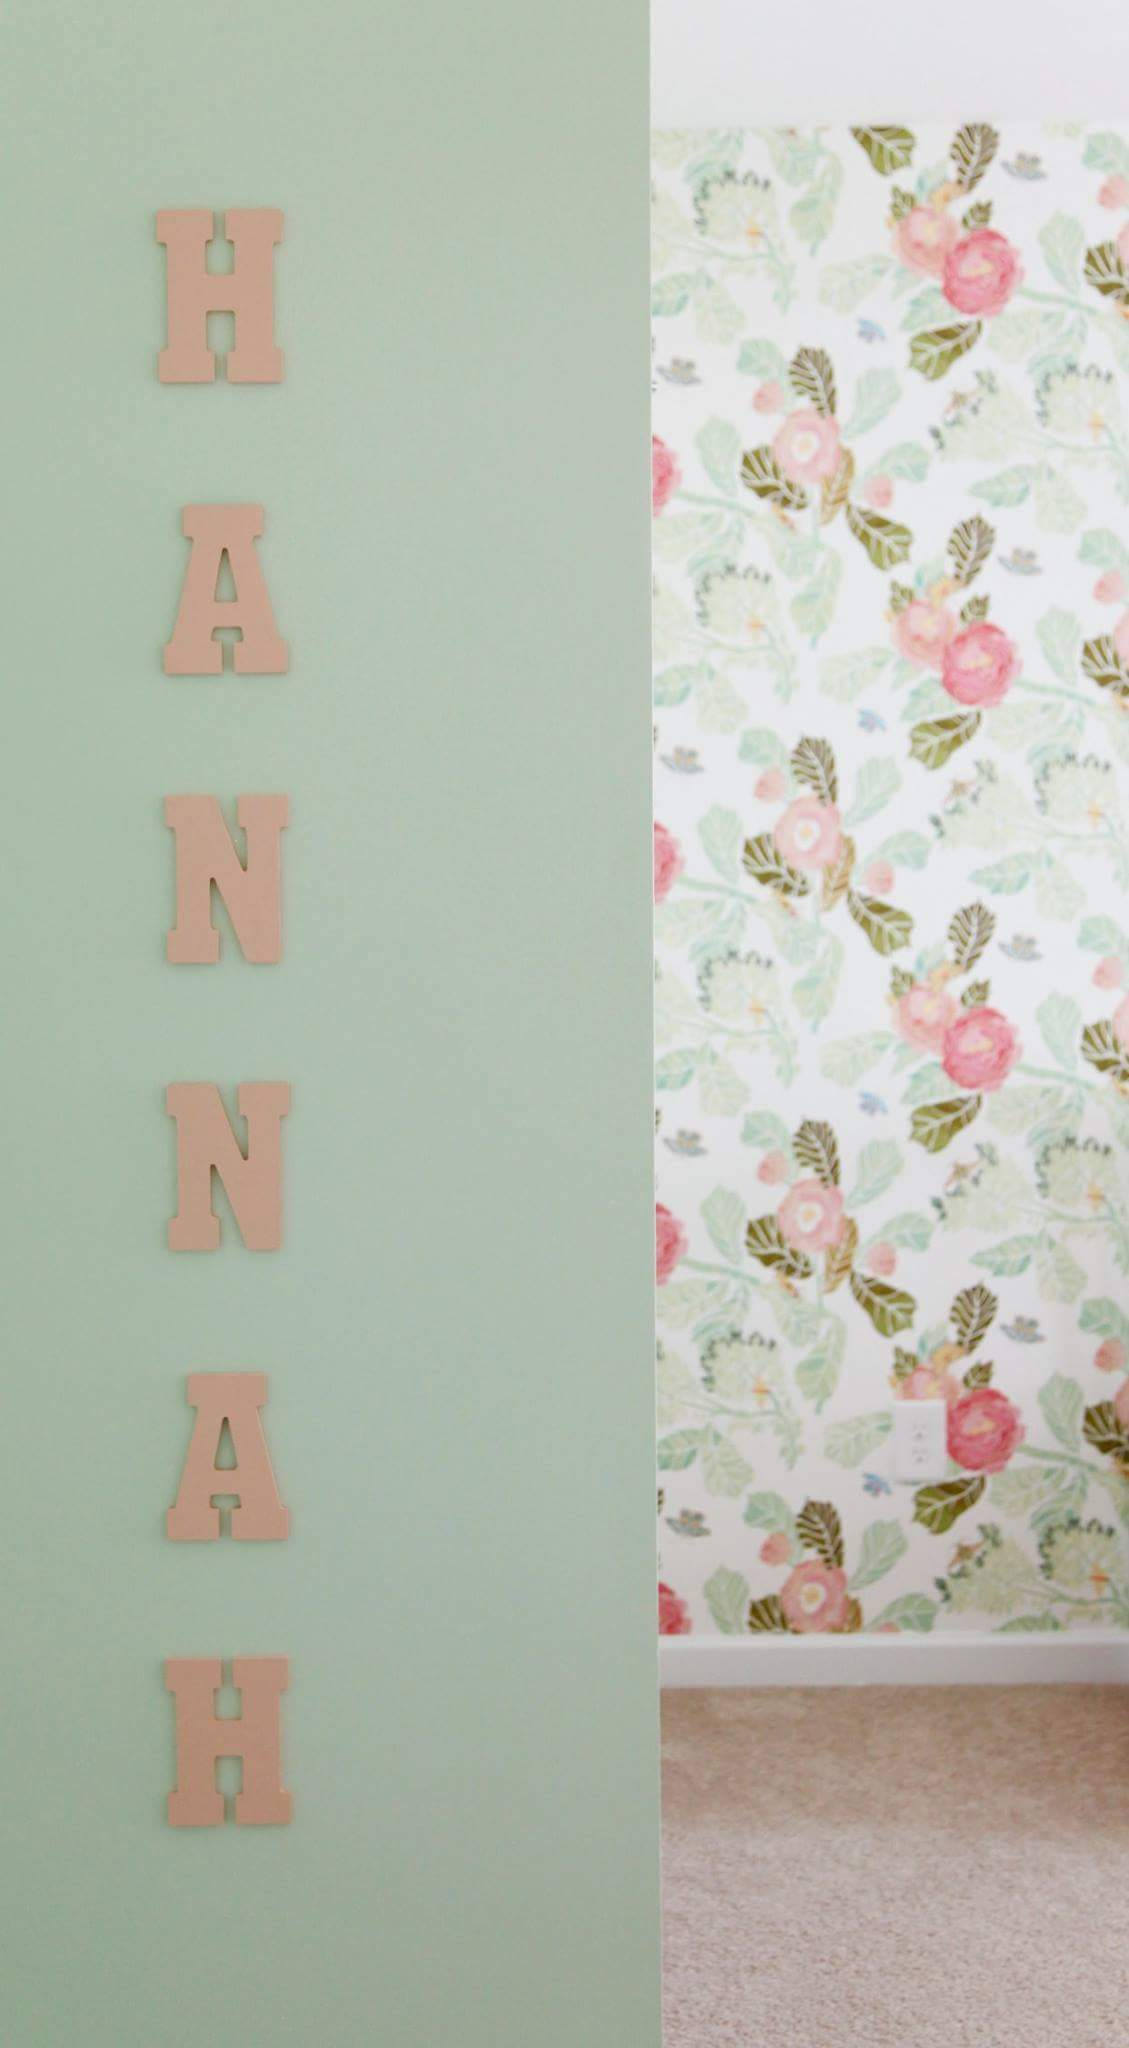 Majestic Hannah Coral Wall Letters Wall Decor Wooden Letters Personalization Hannahs Babyroom Nursery Ideas Girls Coral Baby Bedding Baby Girl Nursery Ideas Floral Nursery Inspiration Nursery Ideas houzz-02 Baby Girl Nursery Ideas